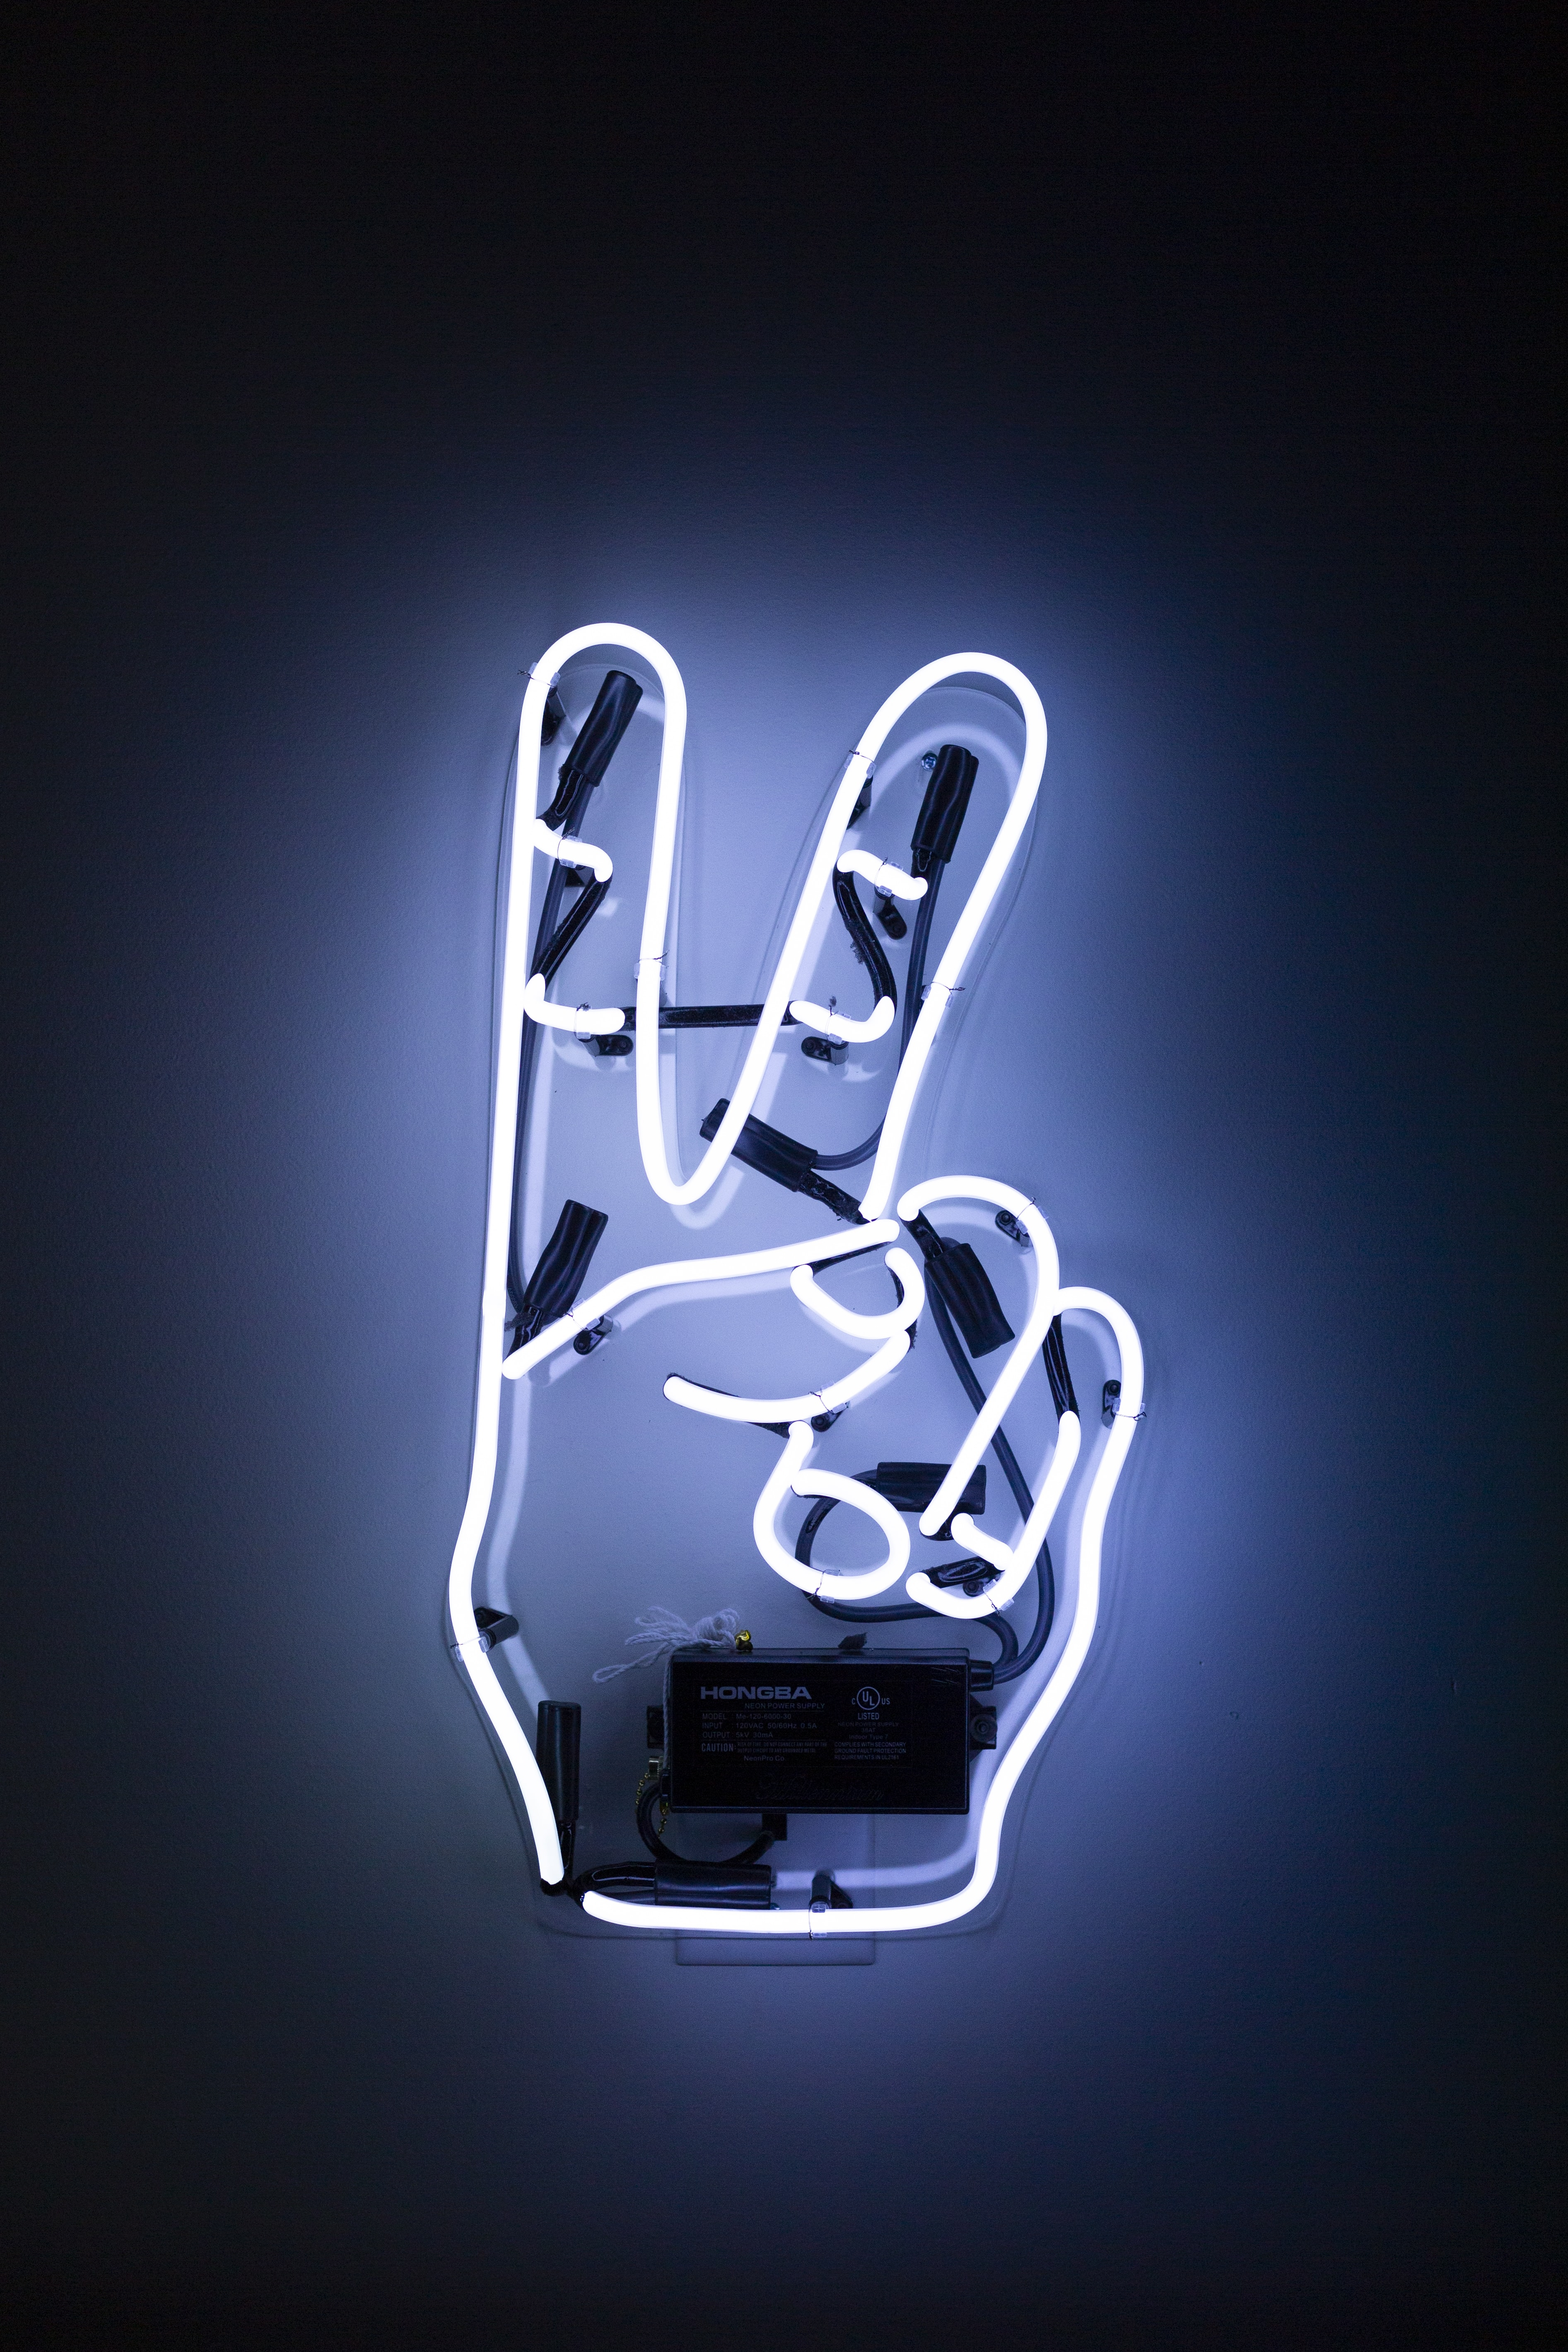 peace hand sign neon light